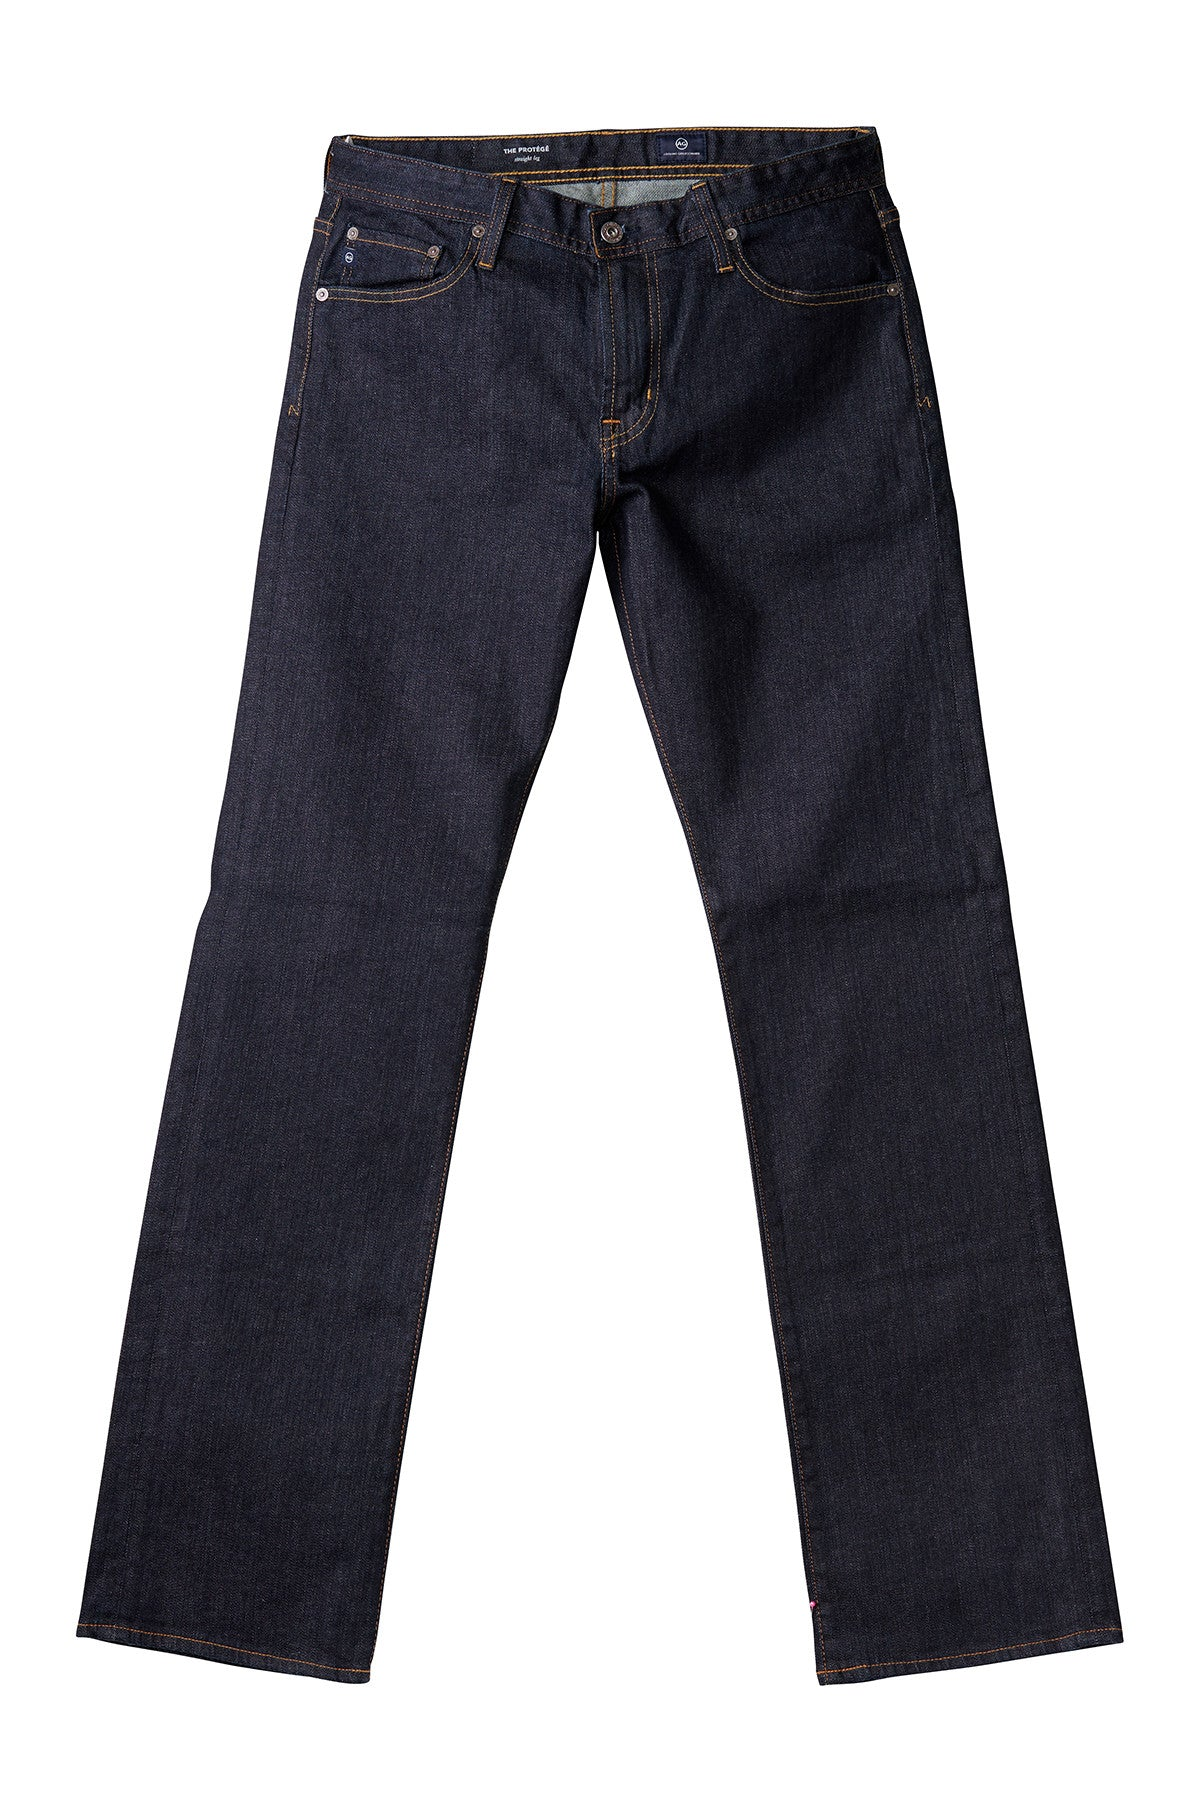 AG 'Protégé' Straight Leg Fit Jeans in Dark Indigo (Jack)